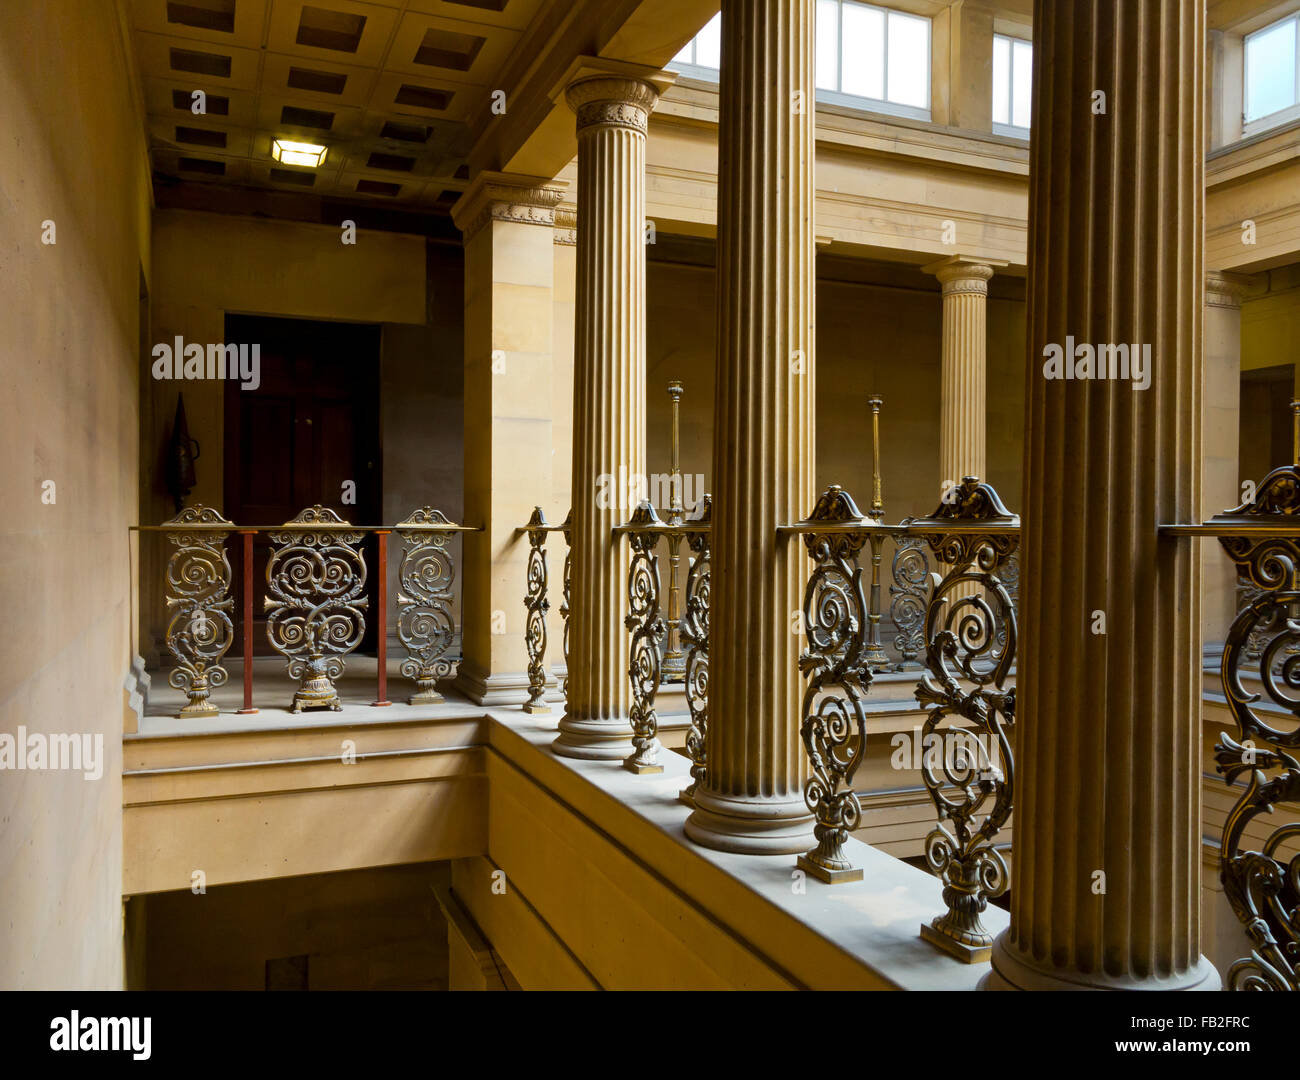 Hall Interior At Belsay A 19th Century Country Mansion In Northumberland England UK Built 1817 And Now Empty